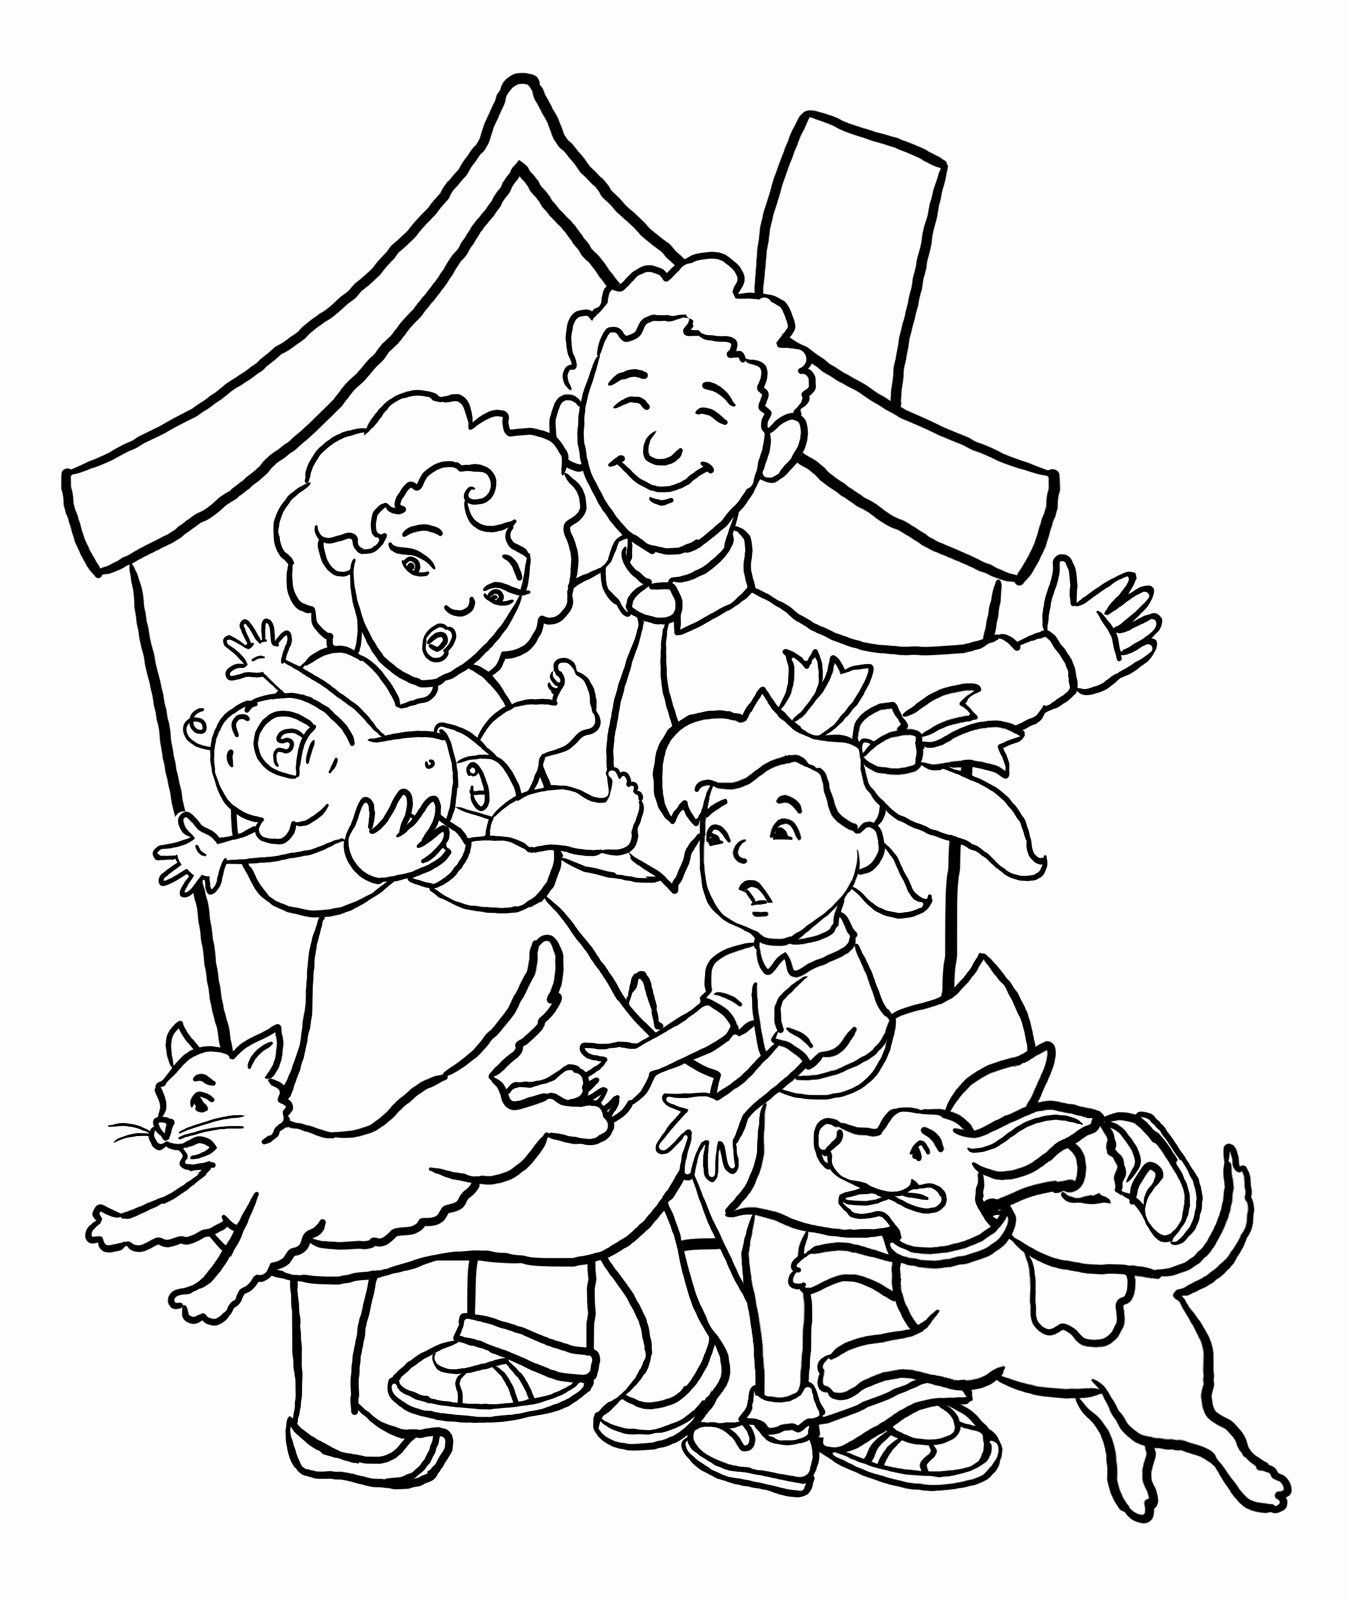 Charlotte Web Coloring Page Luxury Charlottes Web Coloring Pages Sketch Coloring Page Family Coloring Pages Star Coloring Pages Superhero Coloring Pages